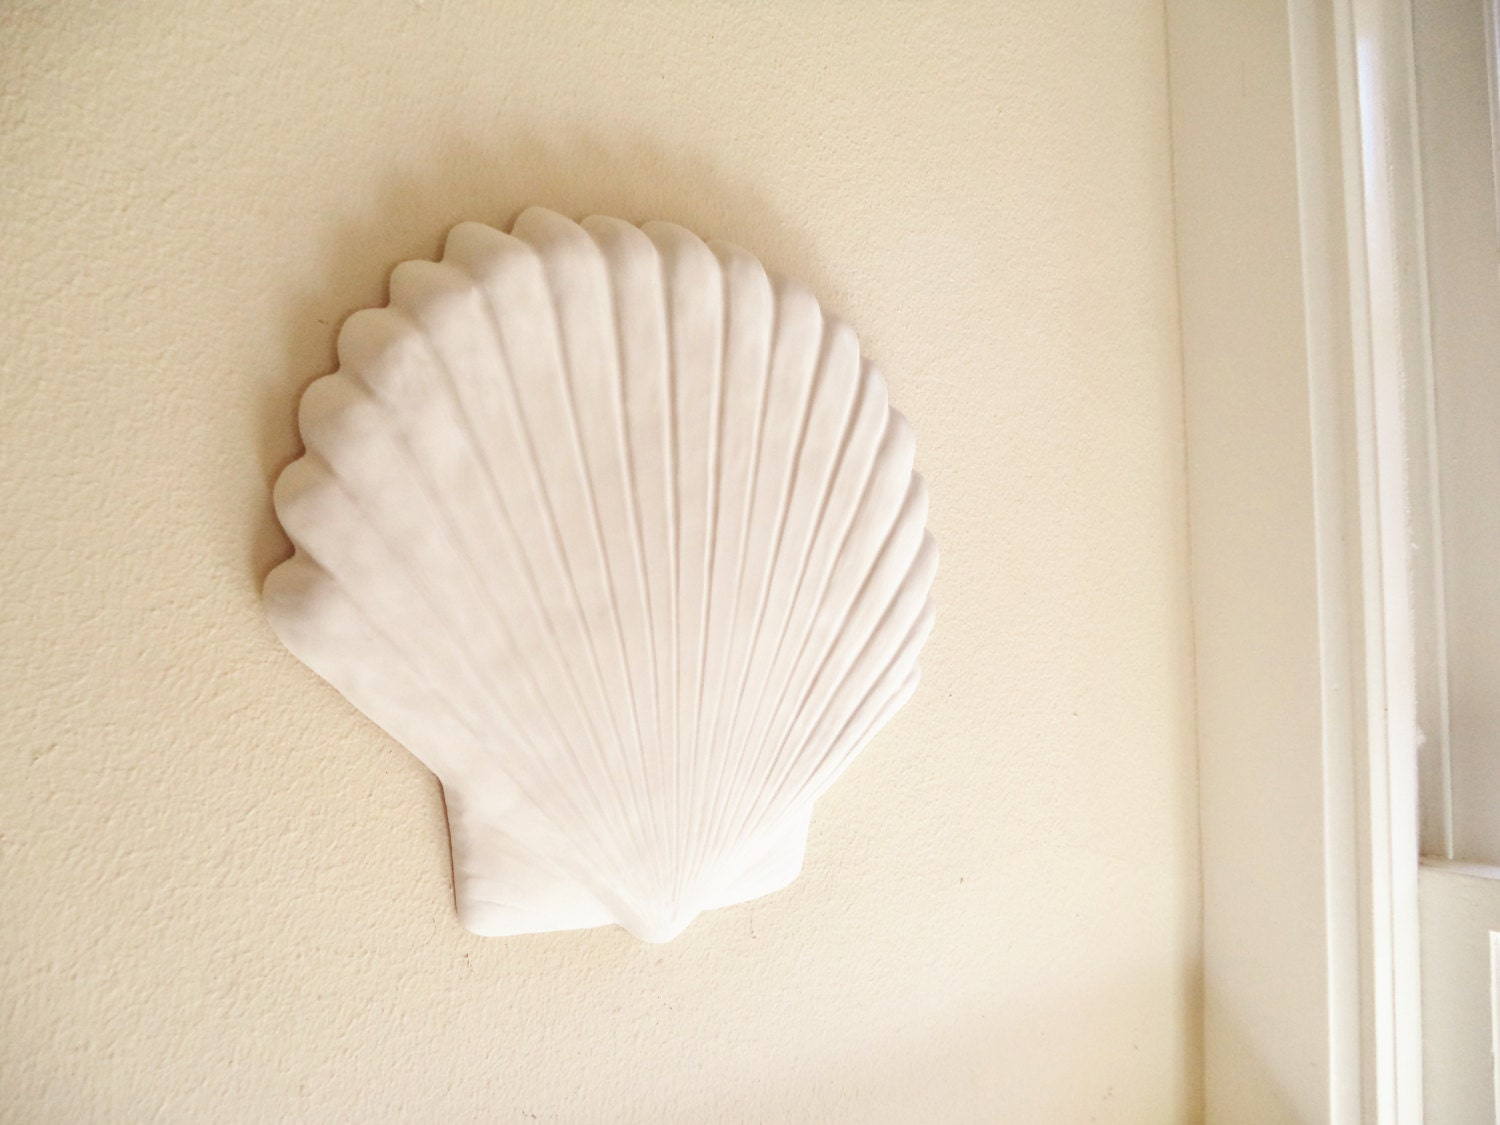 Large Sea Shell Wall Hanging Sculpture Set Decor White